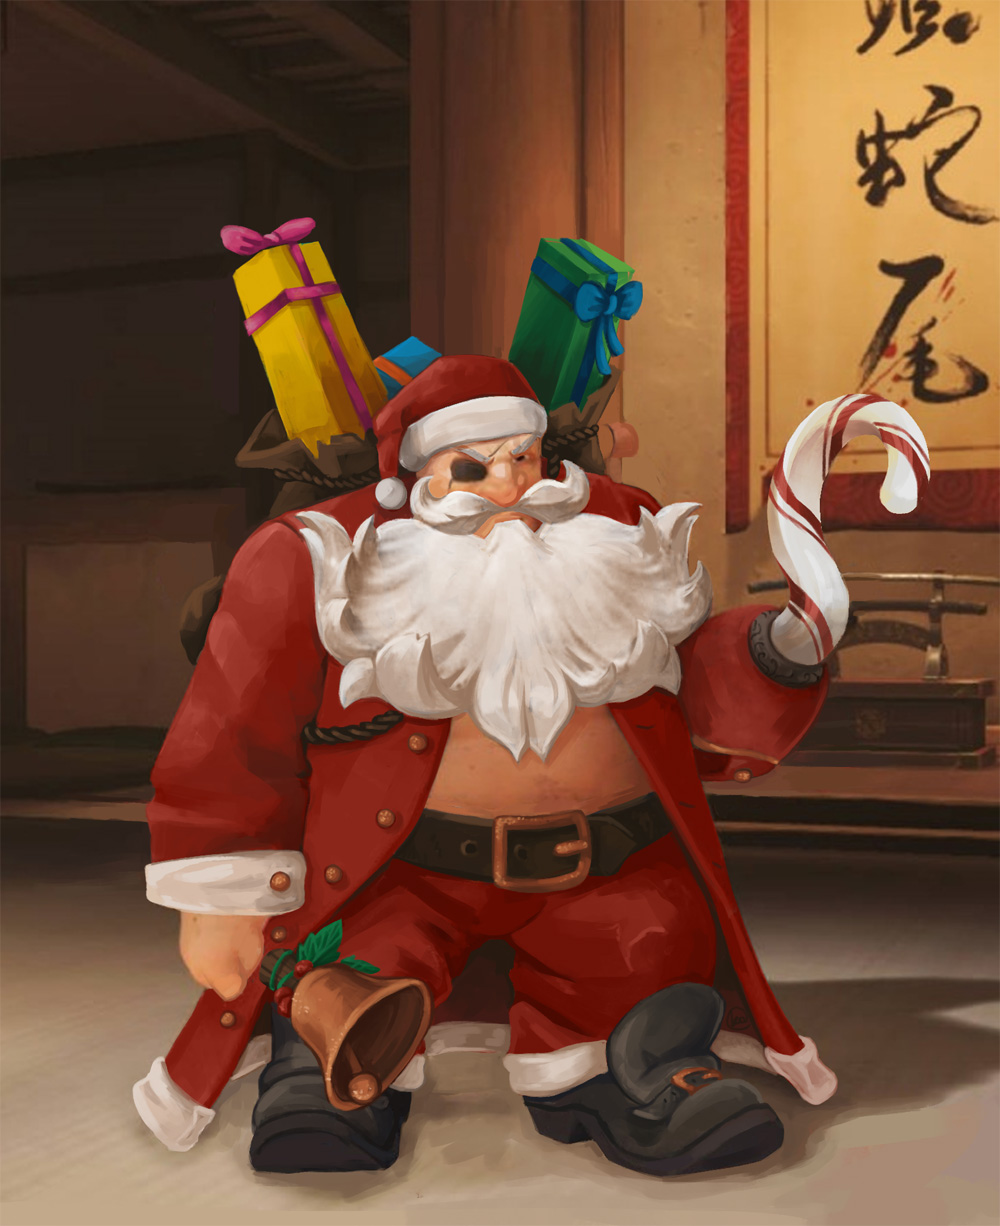 overwatch heroes of the storm santa claus fictional character santa claus